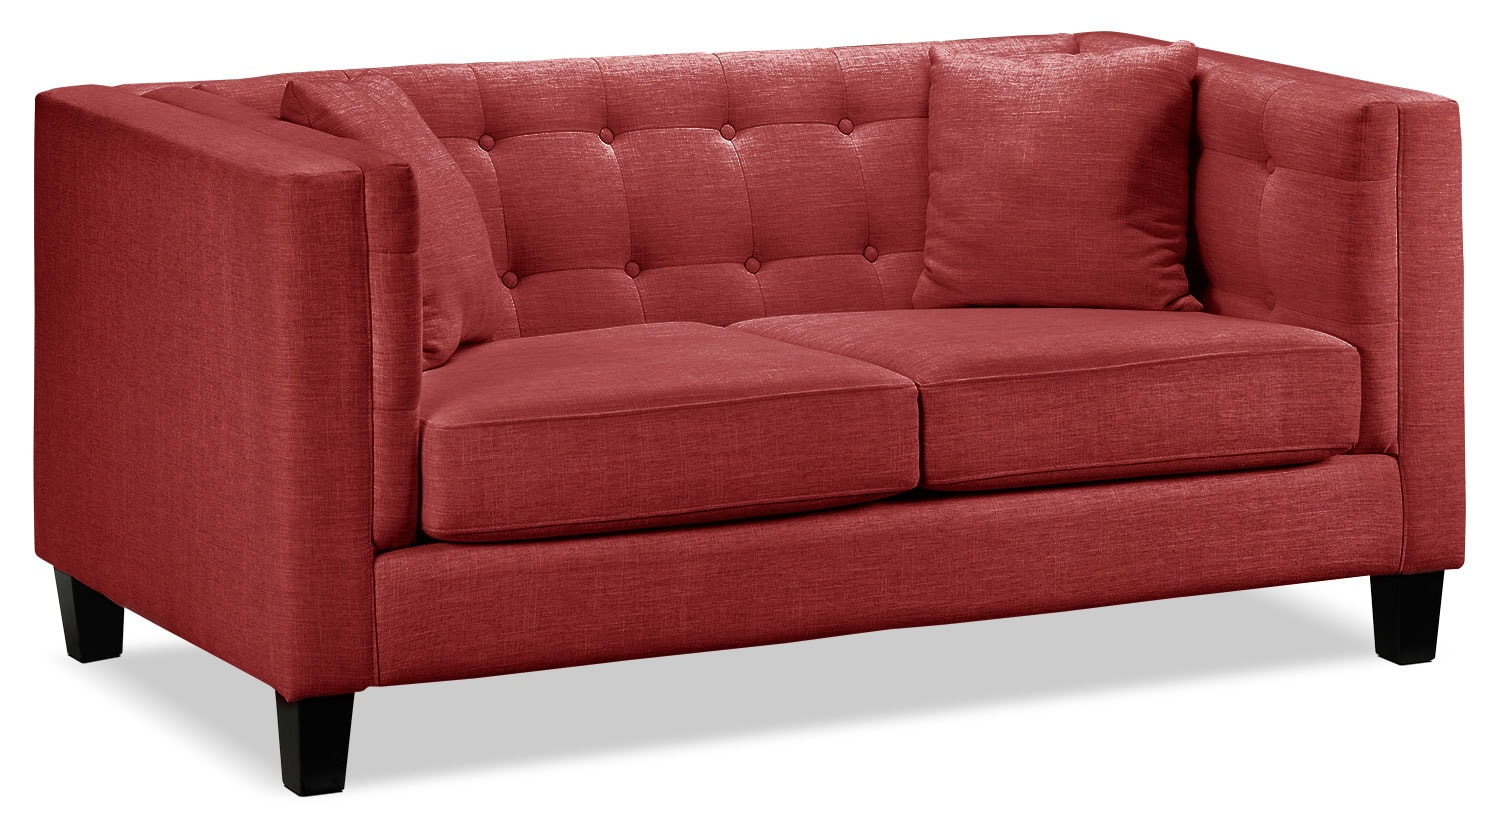 Living Room Furniture - Astin Loveseat - Red